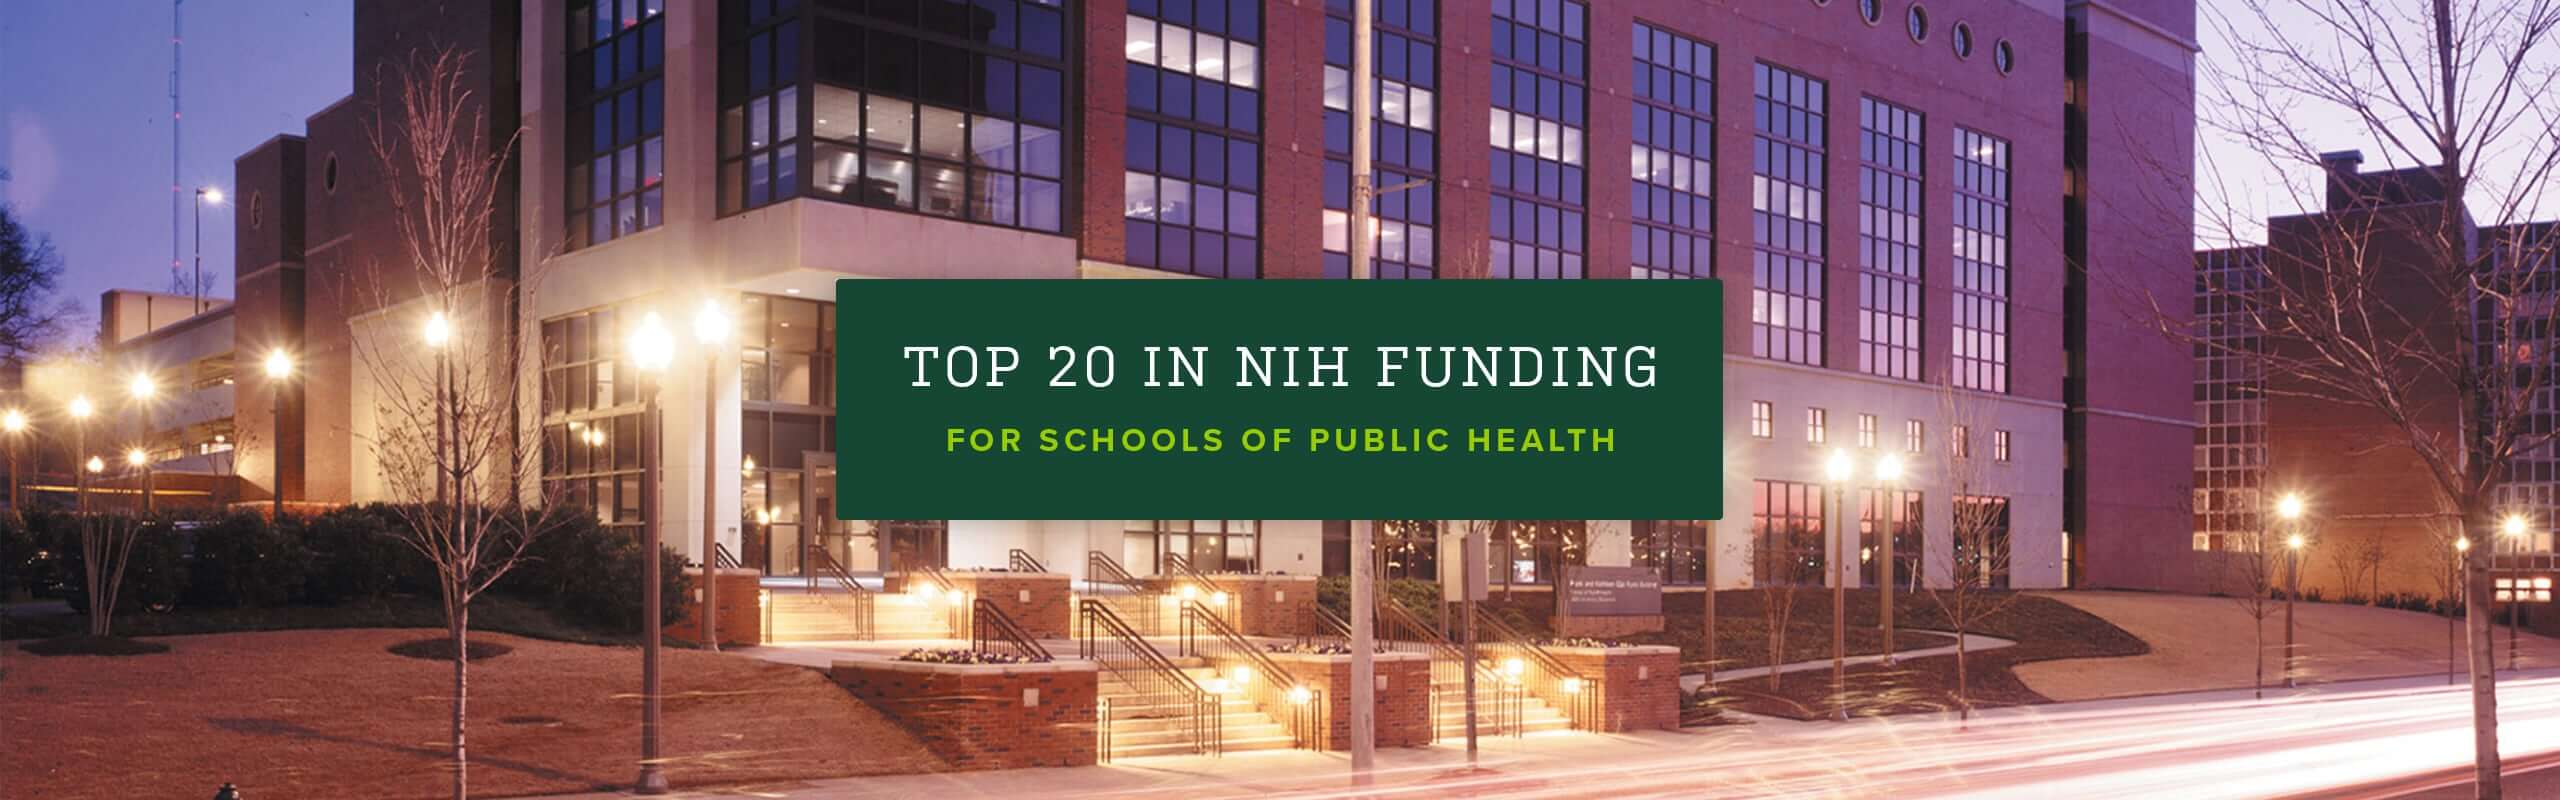 Top 20 in NIH funding for schools of public health.